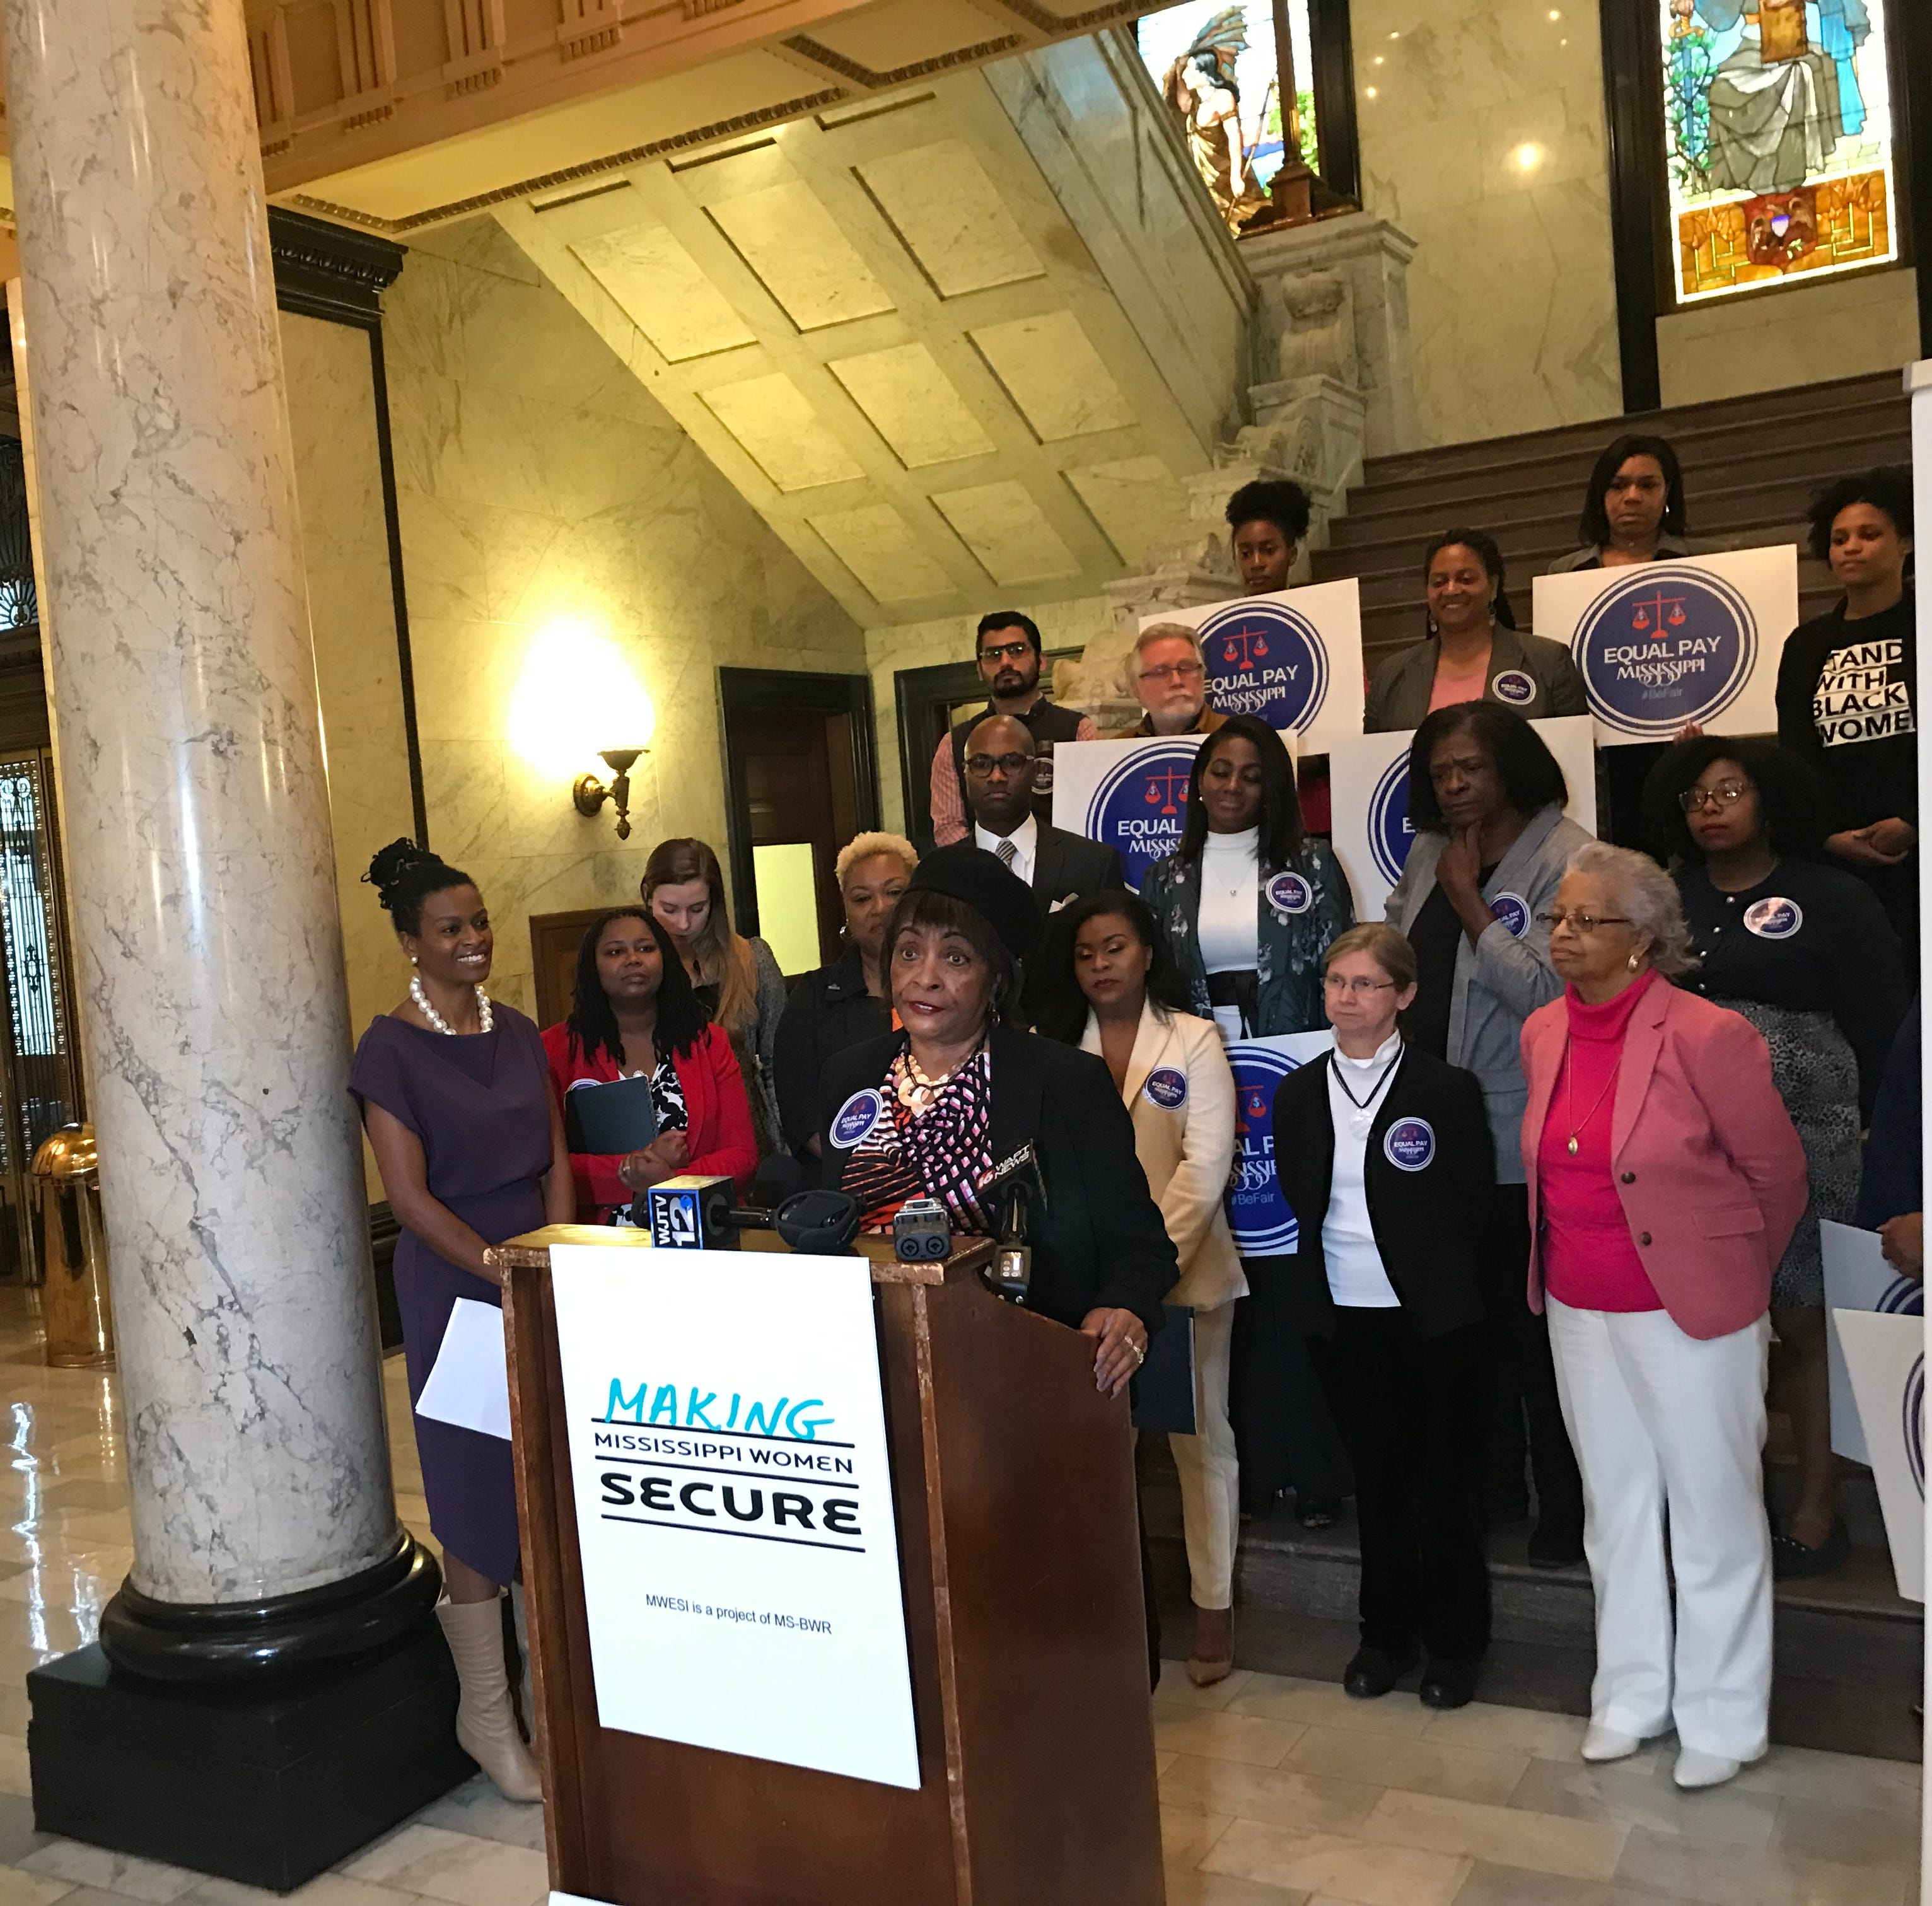 Corrine Anderson, immediate past president of the Mississippi chapter of American Association of University Women,  speaks at the state Capitol for equal pay for equal work for women.